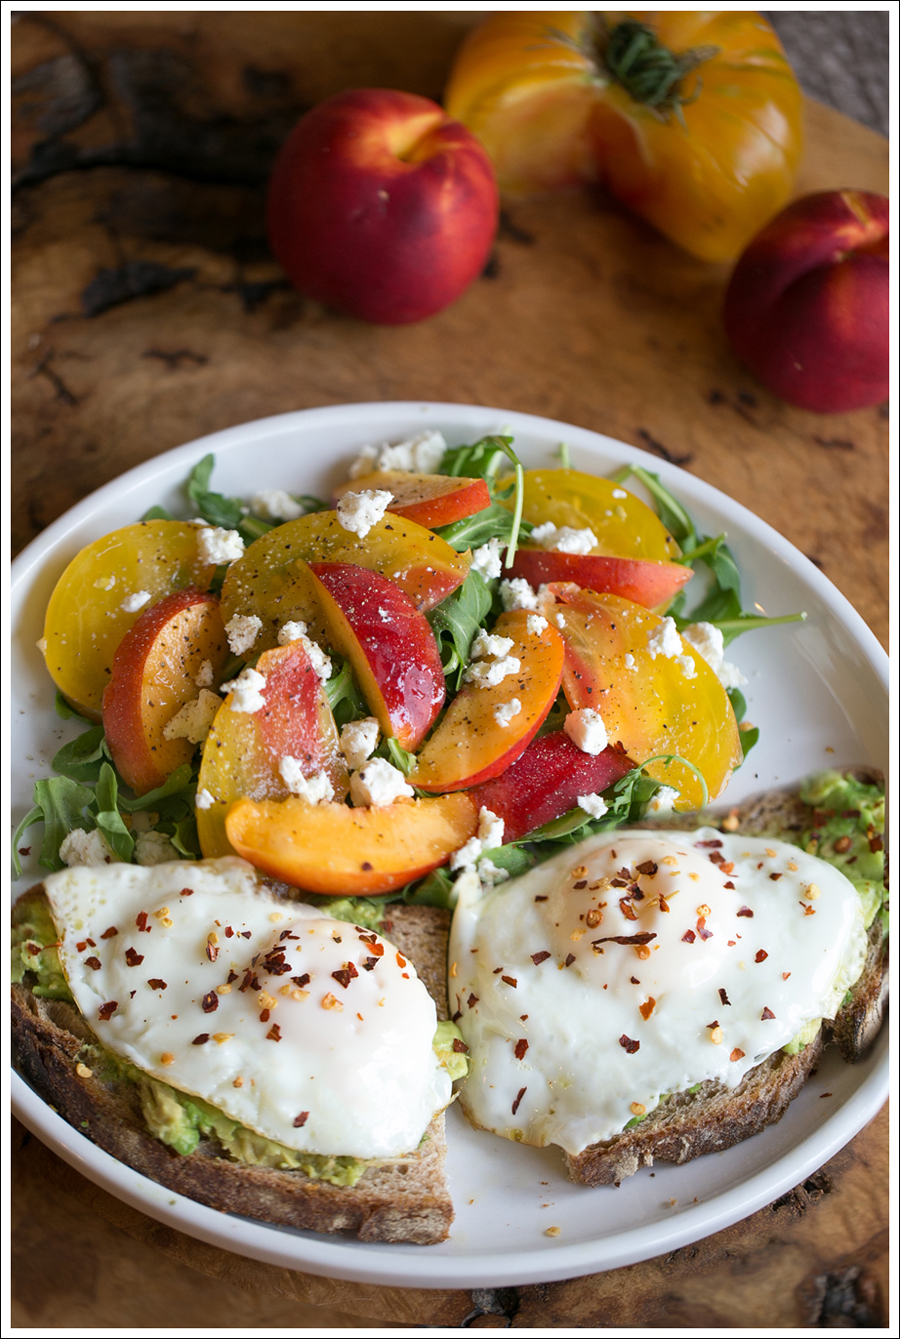 Blog Heirloom Tomato Nectarine Goat Cheese and Arugula Salad with Avocado Toast and Fried Egg-6